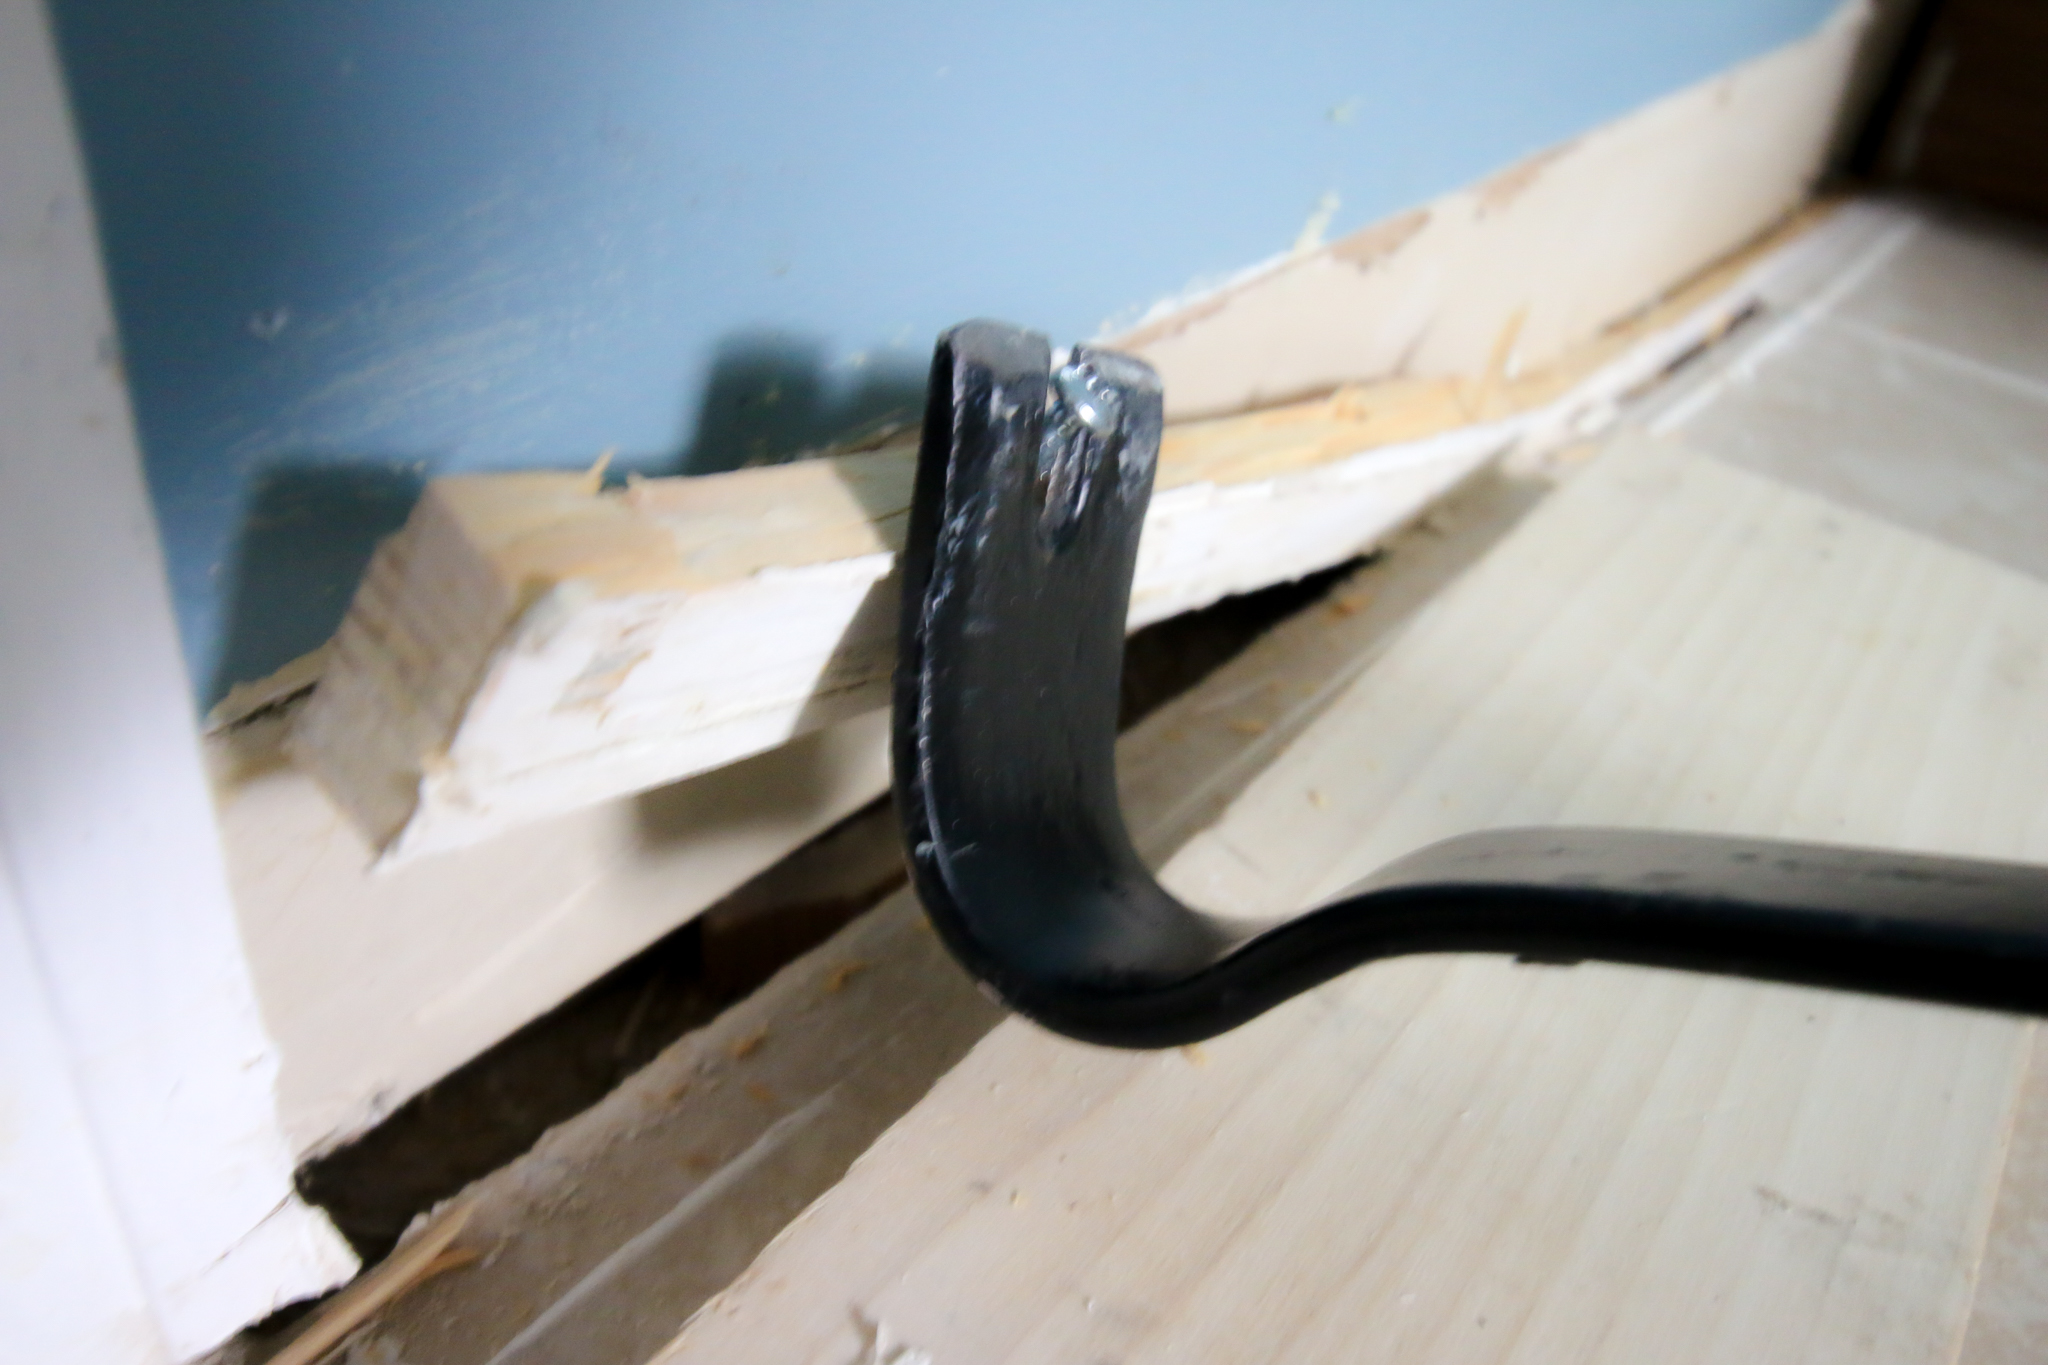 Prying baseboard out